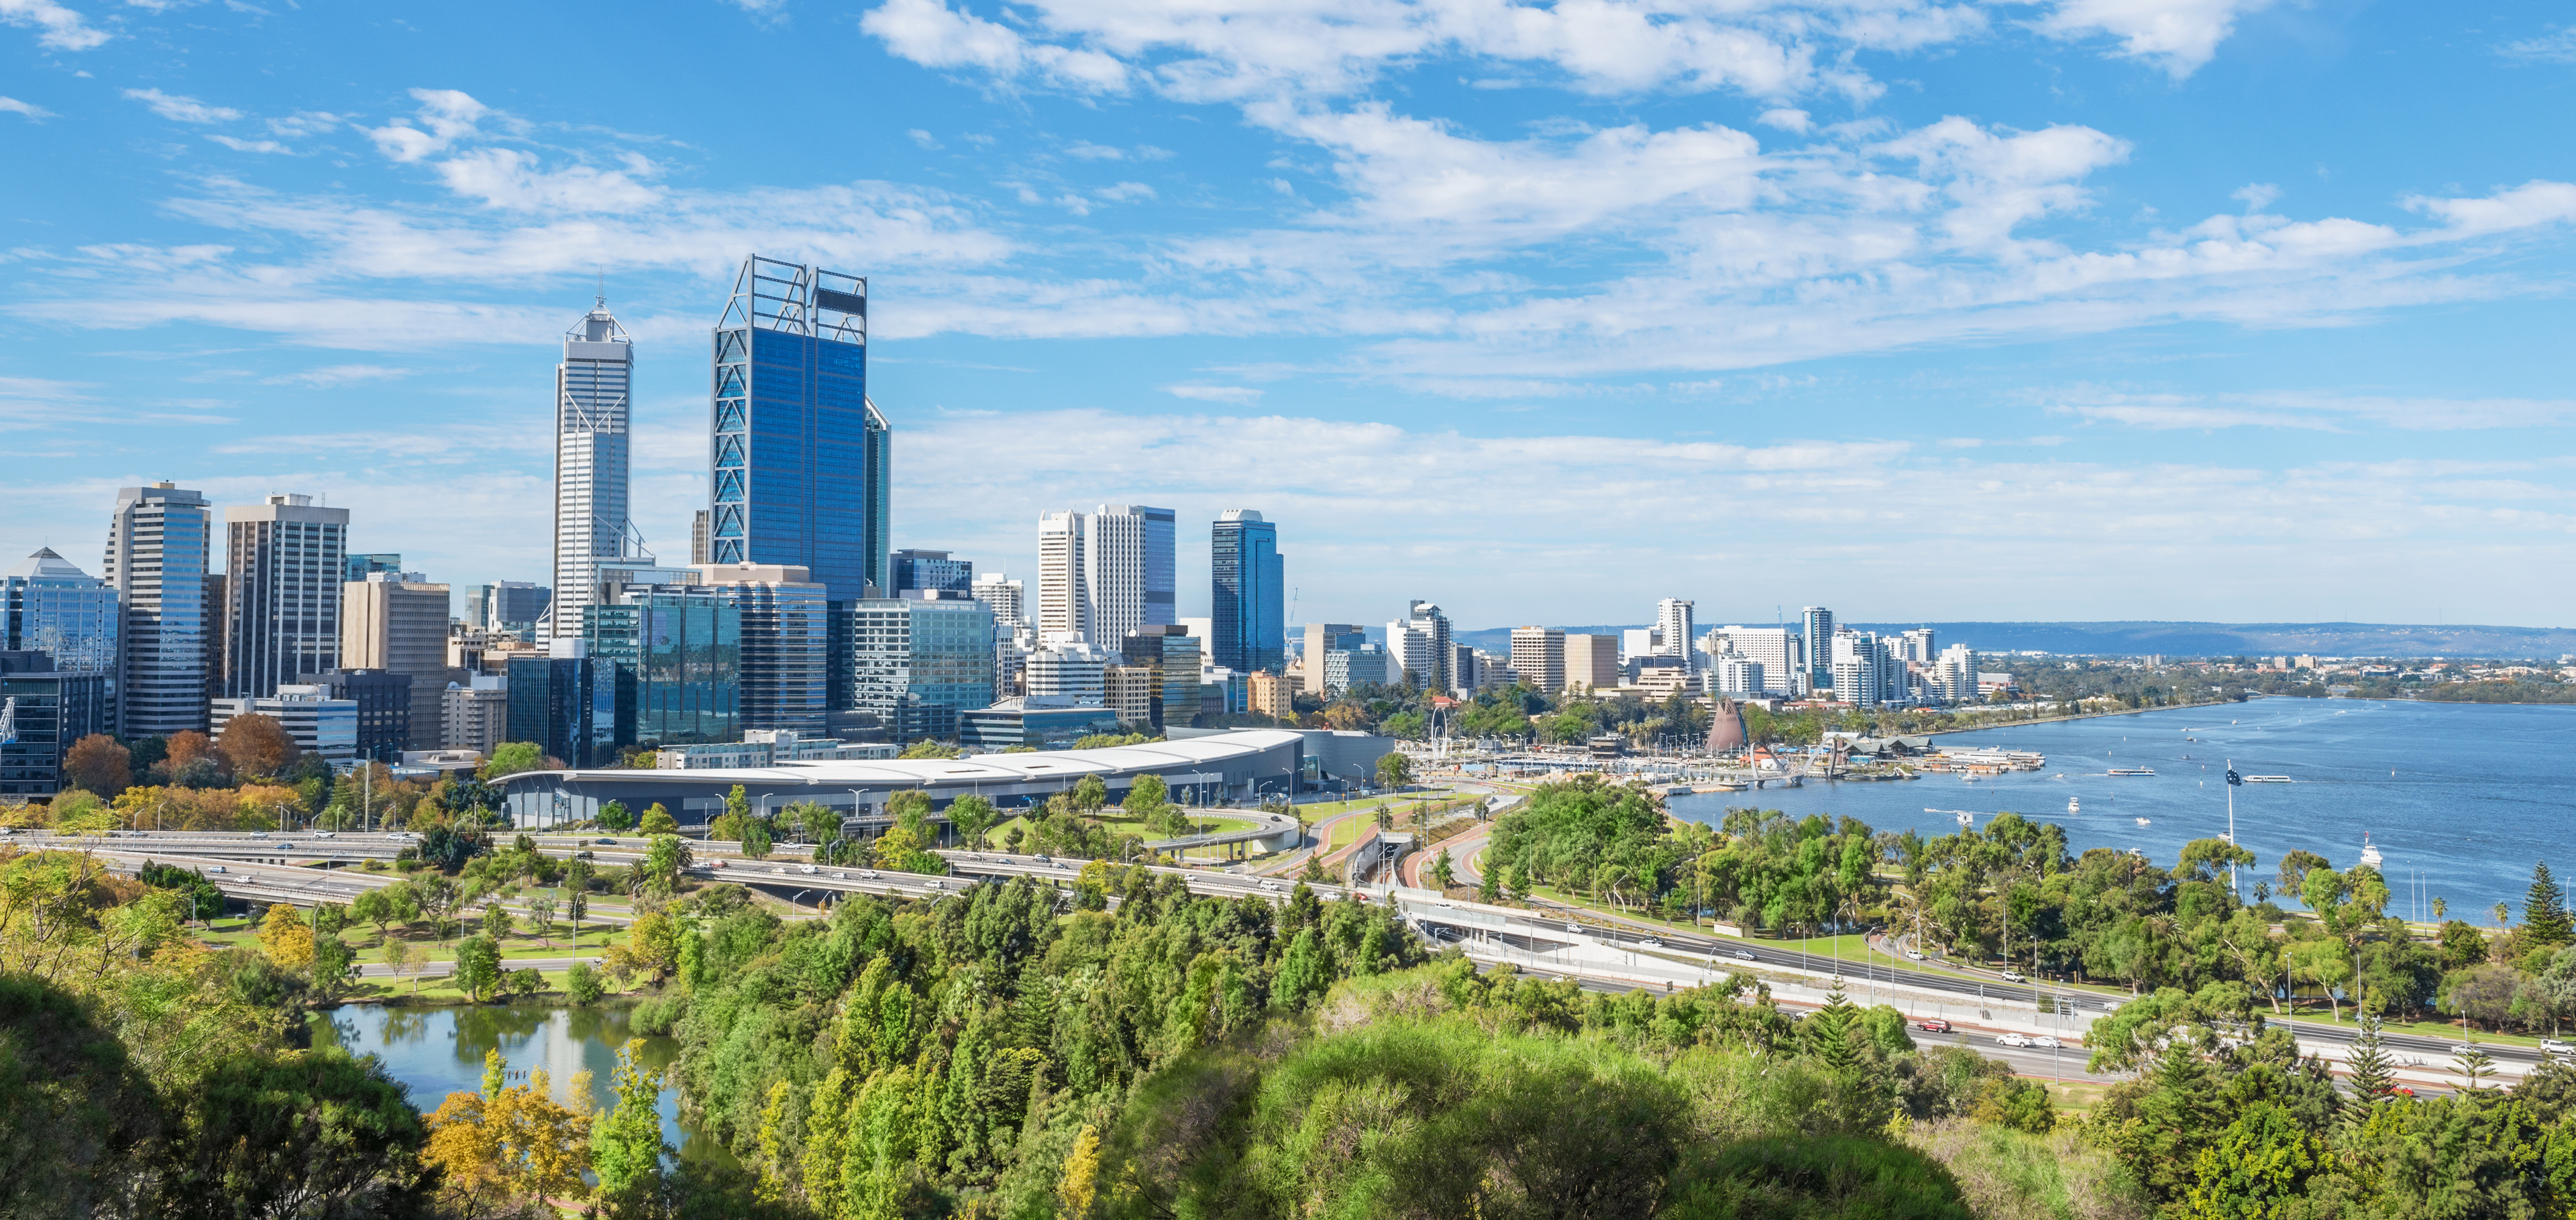 Skyline of Perth (Getty Images/iStock)